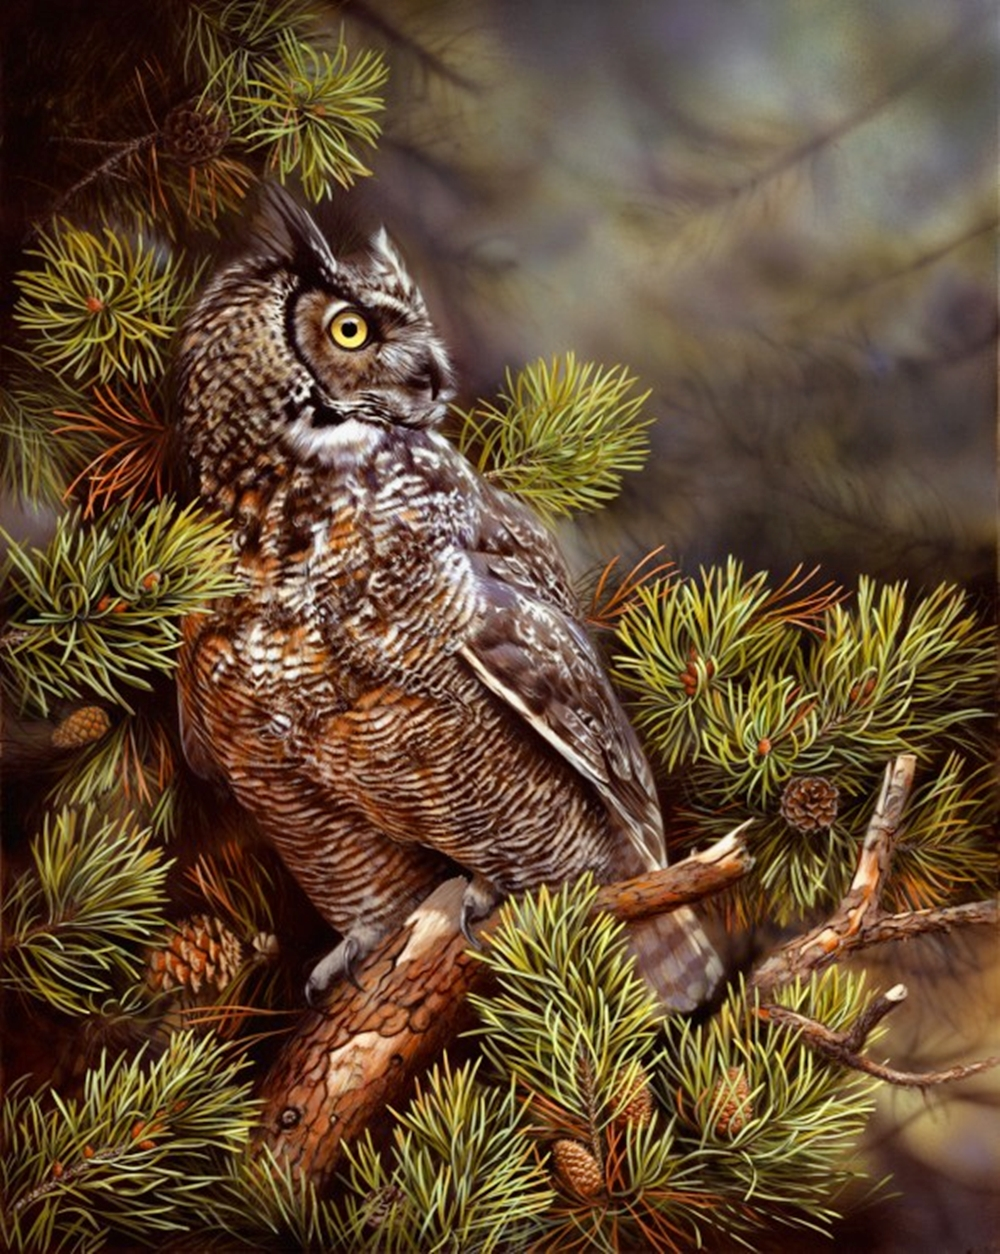 'Twilight Great Horned Owl'